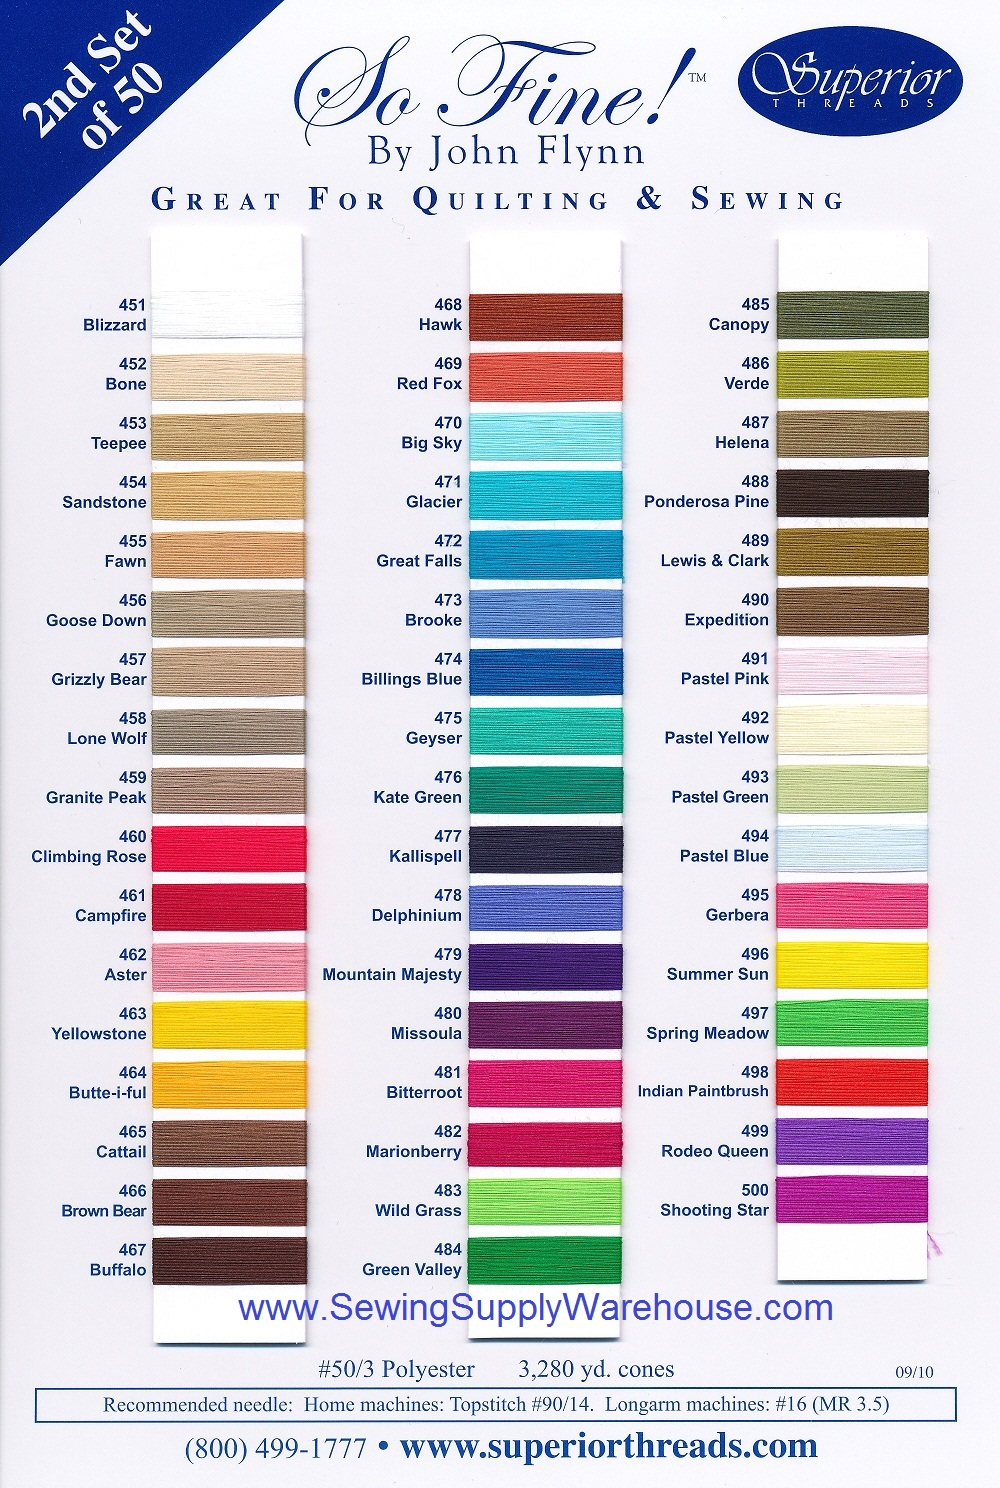 Iris embroidery floss color chart images chart design ideas floriani embroidery thread conversion chart image collections free gutermann embroidery thread color chart gallery free any nvjuhfo Image collections